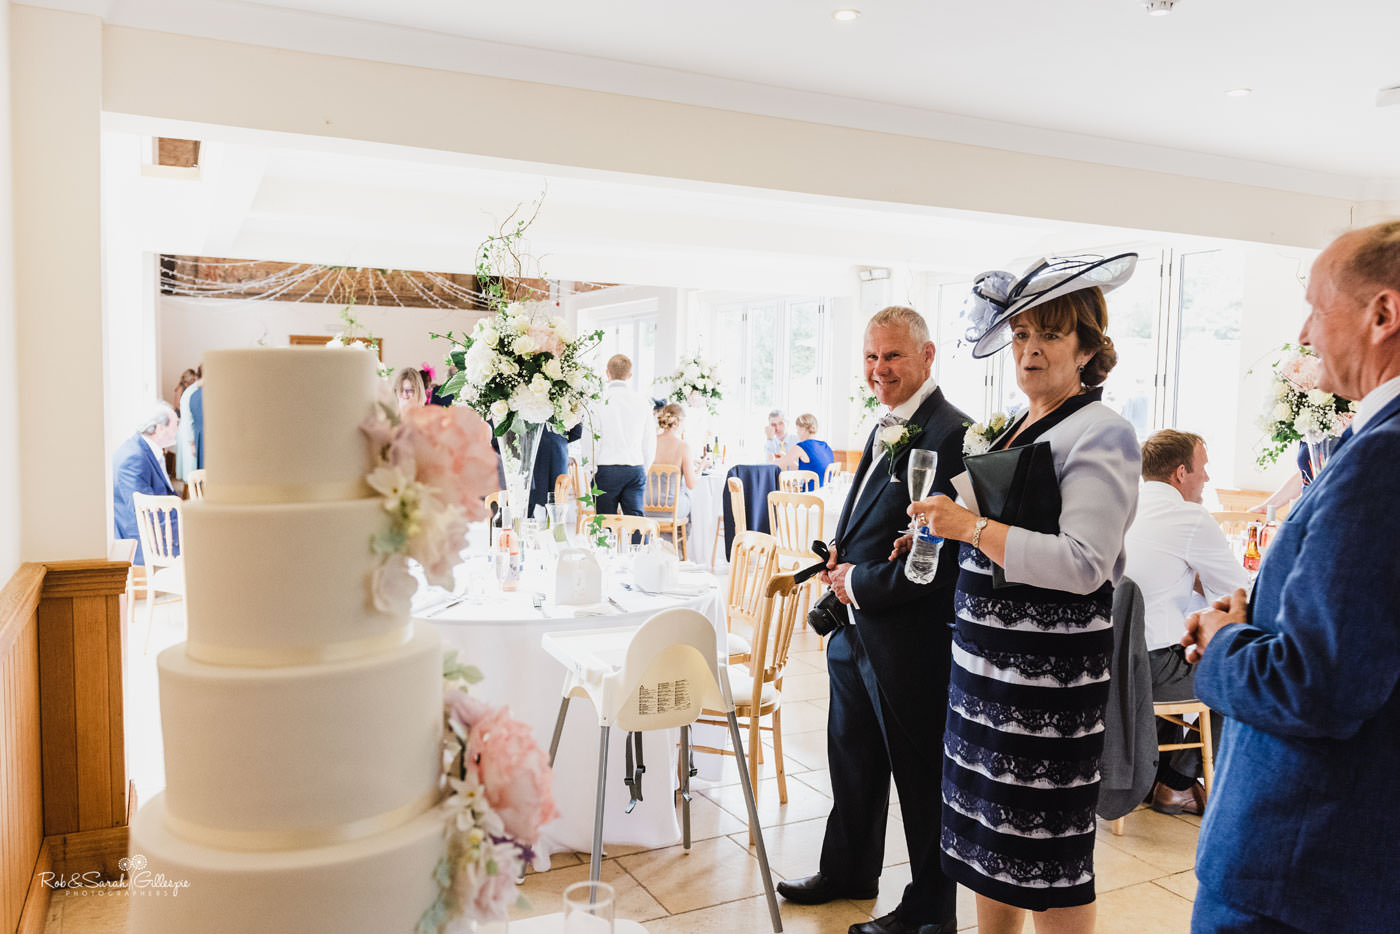 Wedding guests admire cake at Delbury Hall